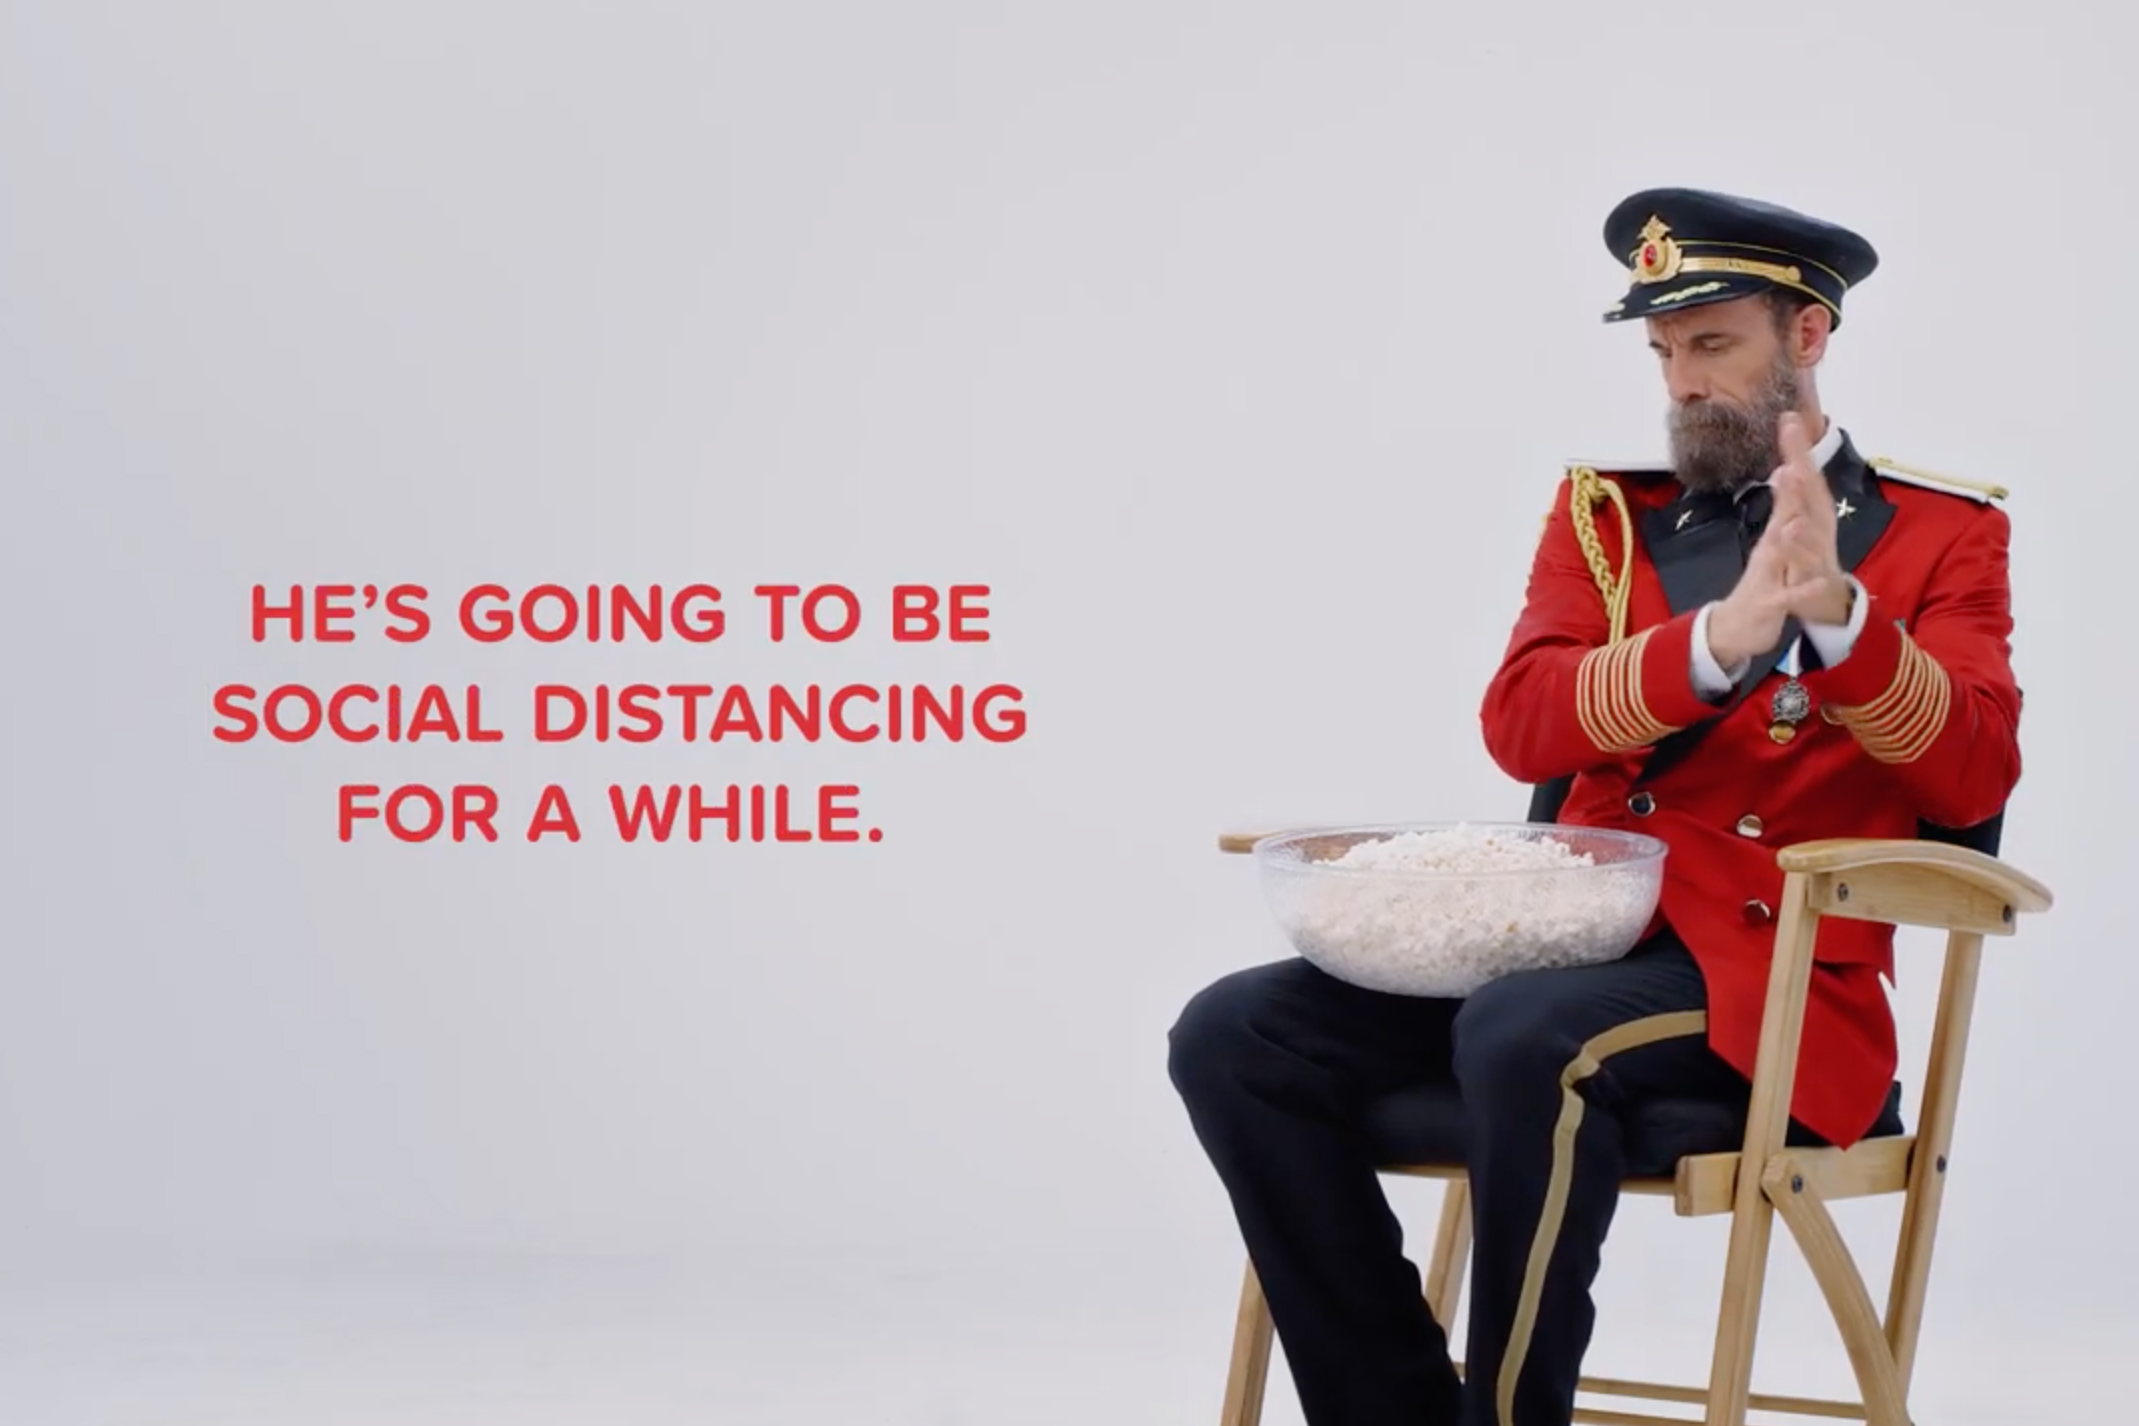 Captain Obvious is social distancing too in a Hotels.com TV ad